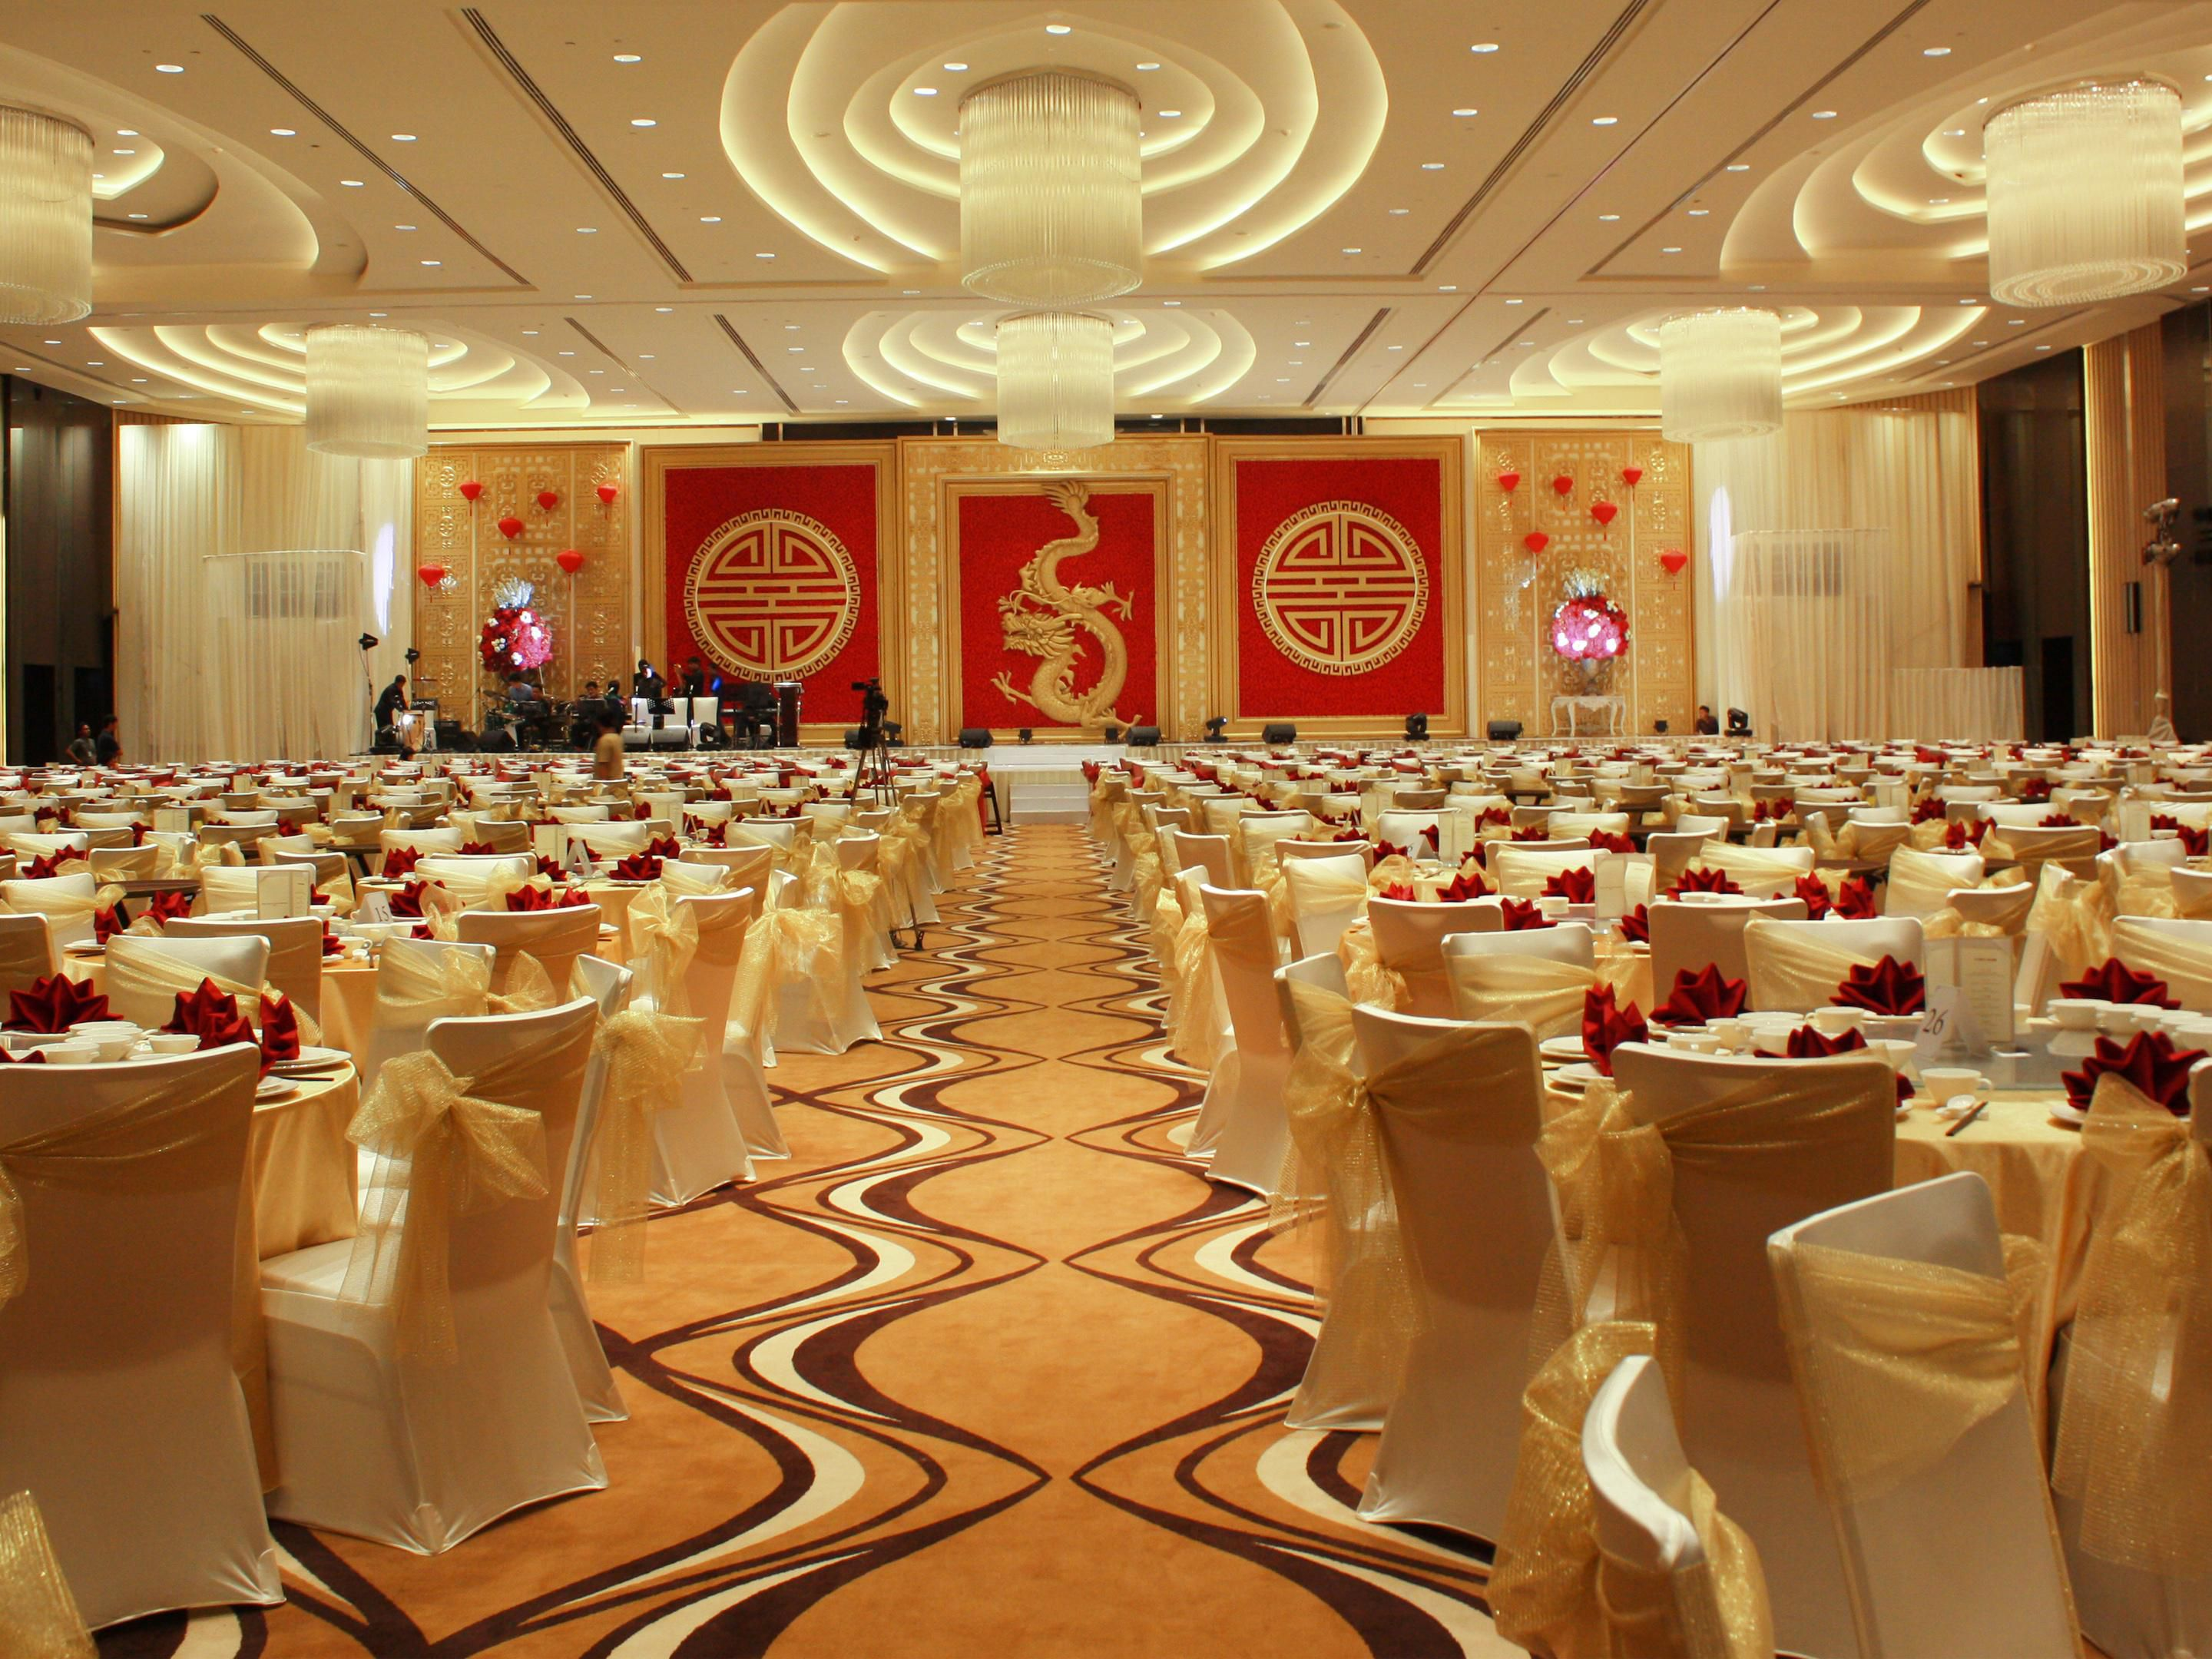 Crowne plaza semarang hotel meeting rooms for rent ballroom photo junglespirit Image collections